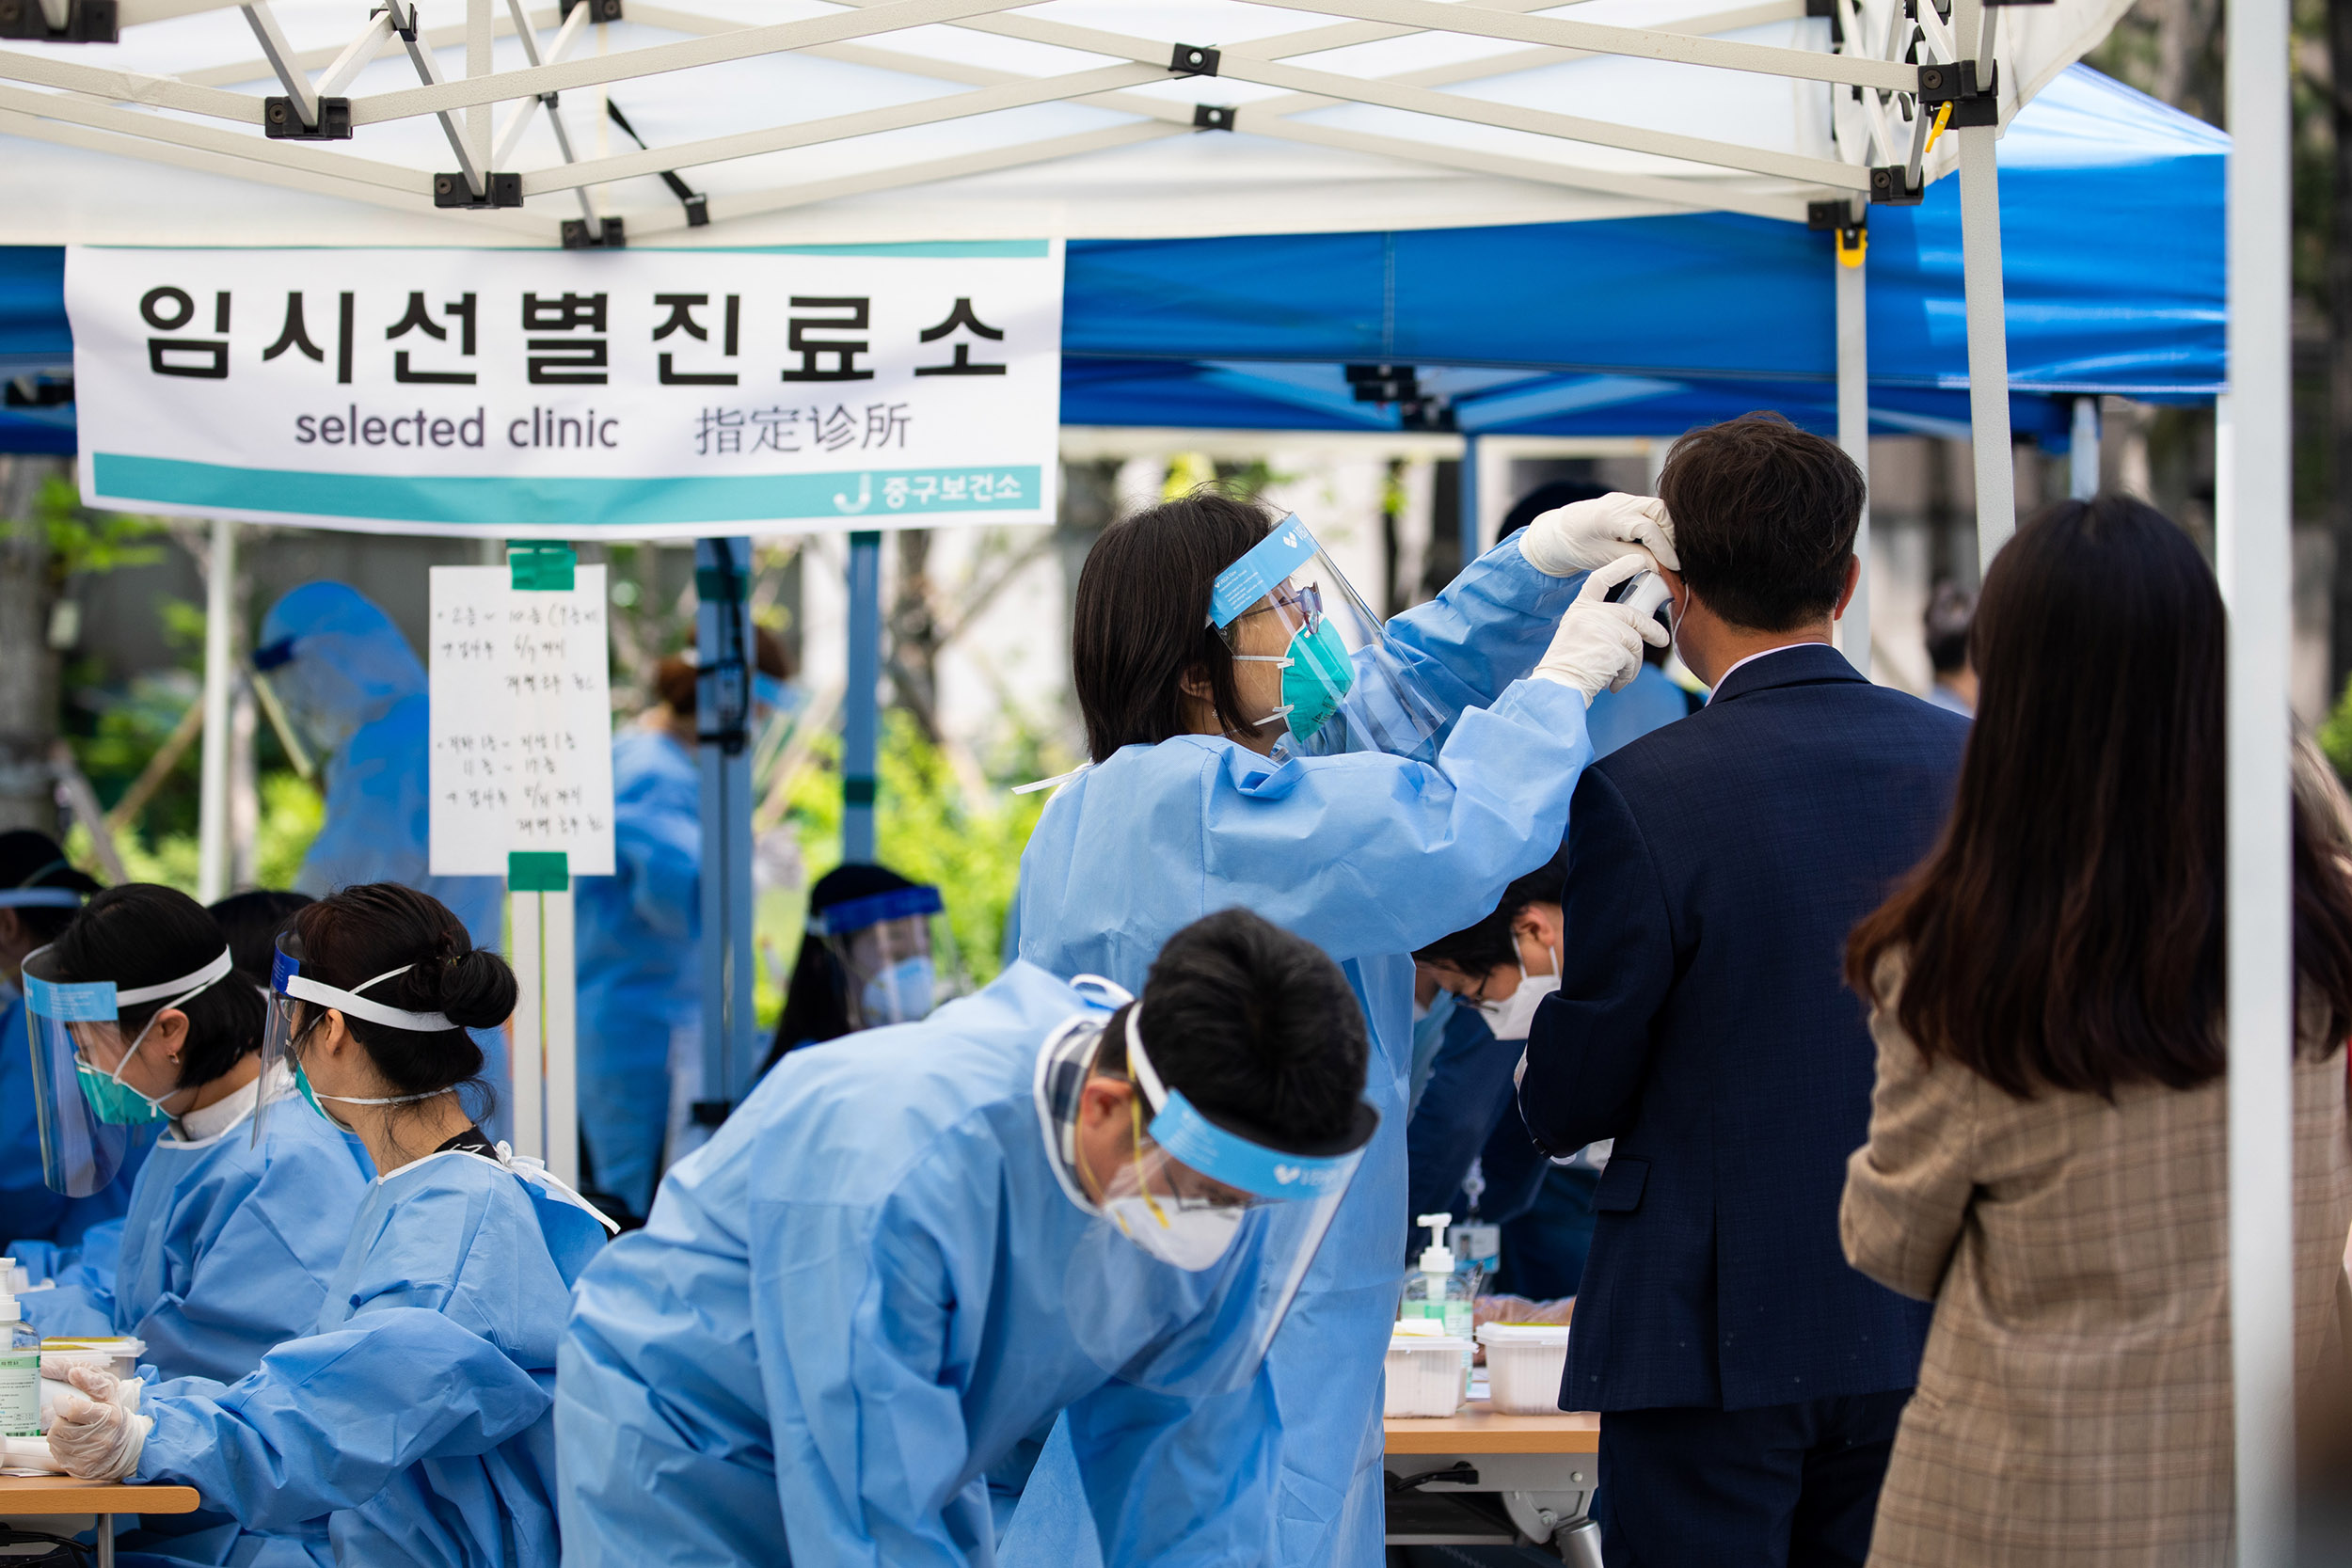 A medical worker checks a man's temperature at a coronavirus testing station in Seoul, South Korea, on May 29.